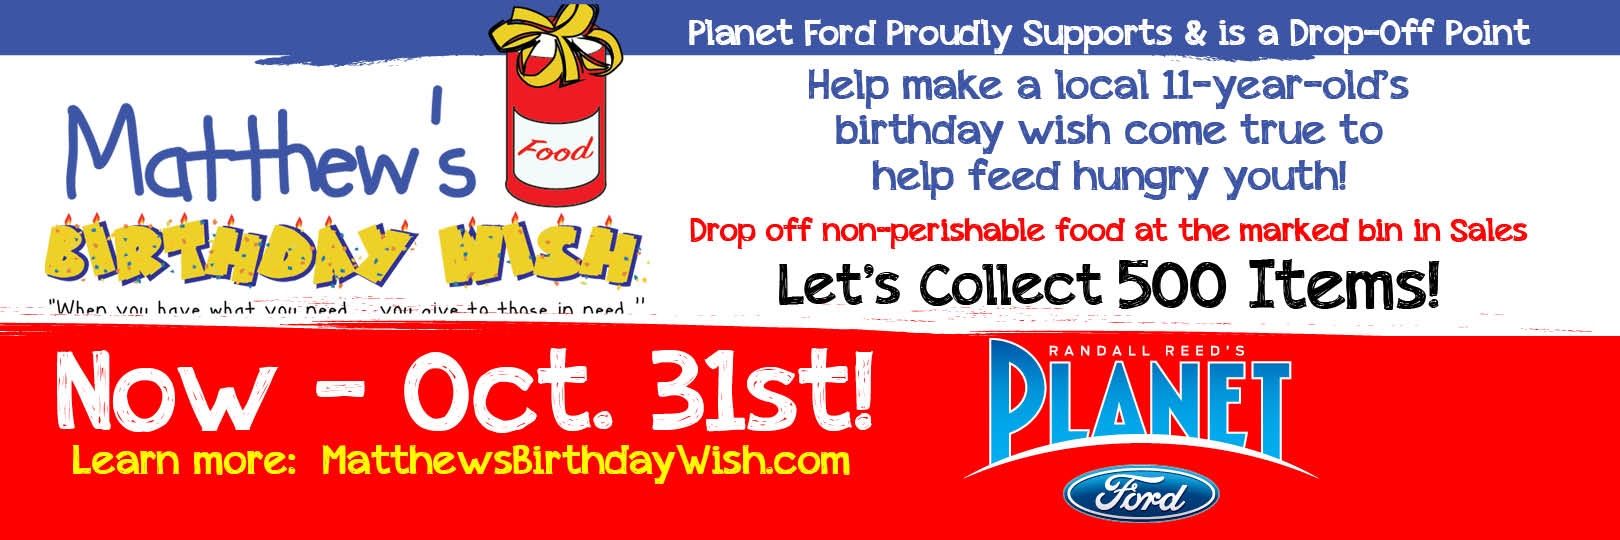 Planet Ford On I 45 In Spring Texas Is Proud To Support And Help Make An 11 Year Old Boys Birthday Wish Others Come True Has A